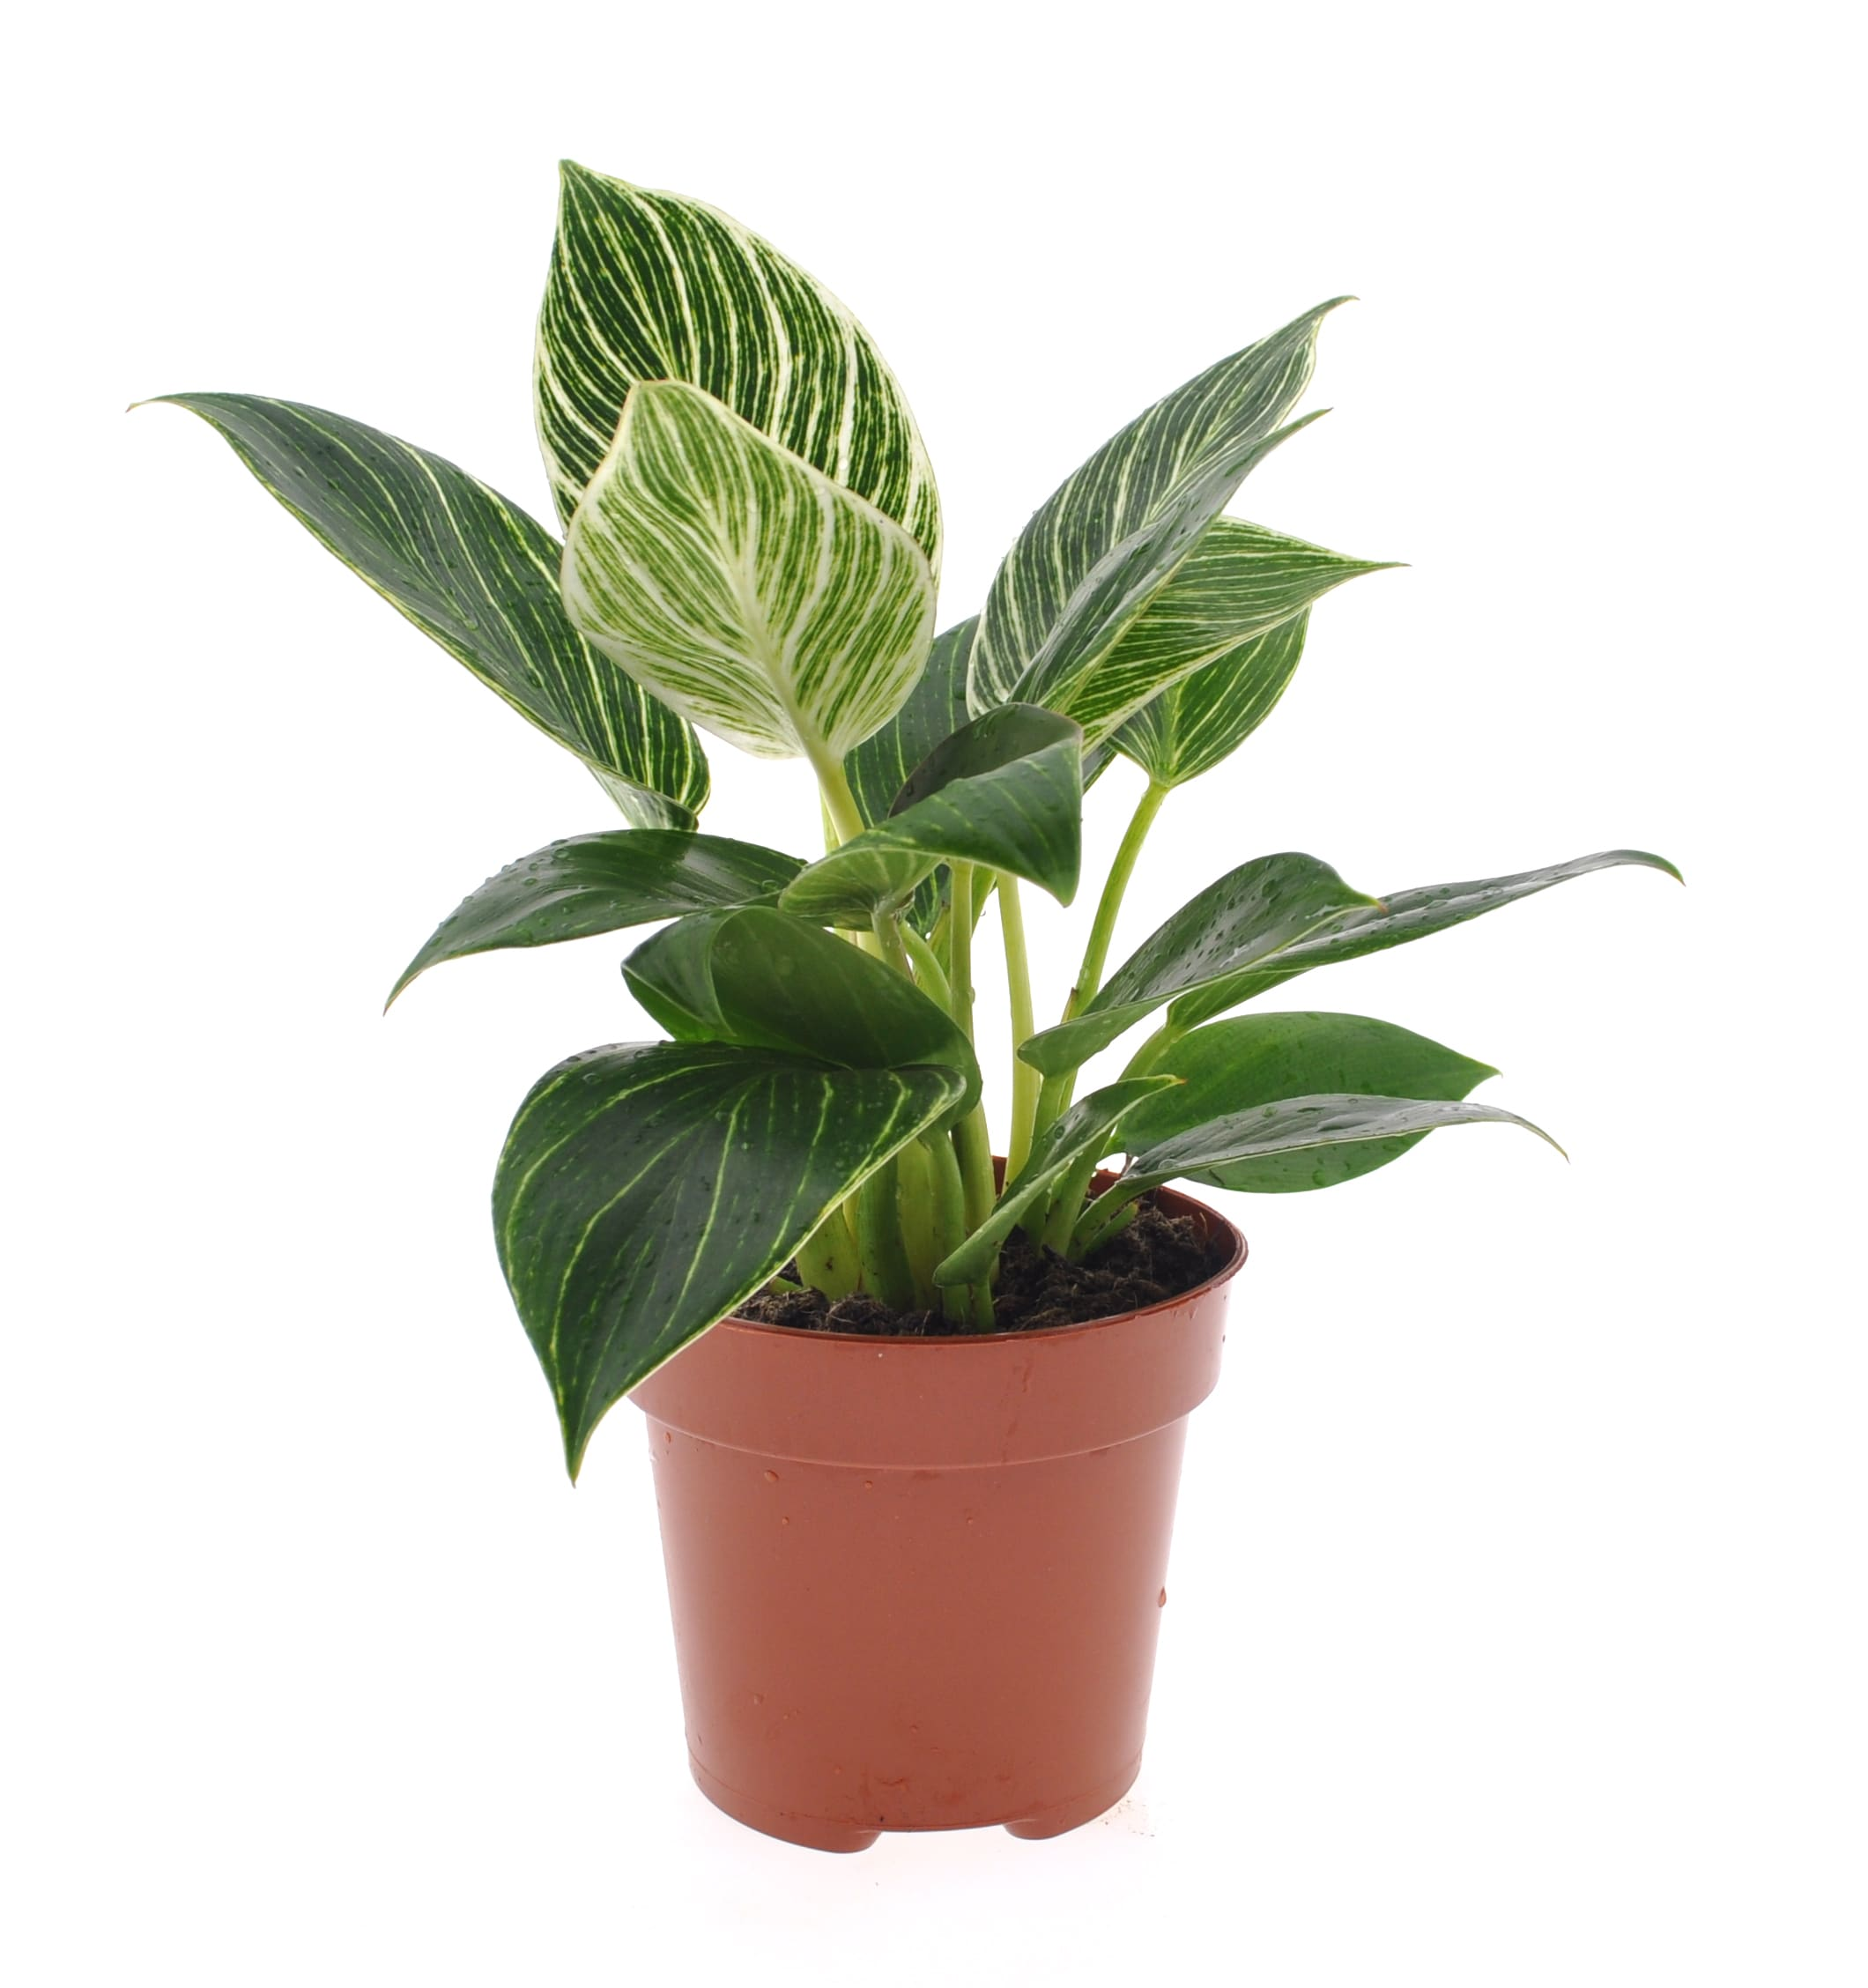 Zimmerpflanze – Philodendron Mix – Höhe: 25 cm, 1 Trieb